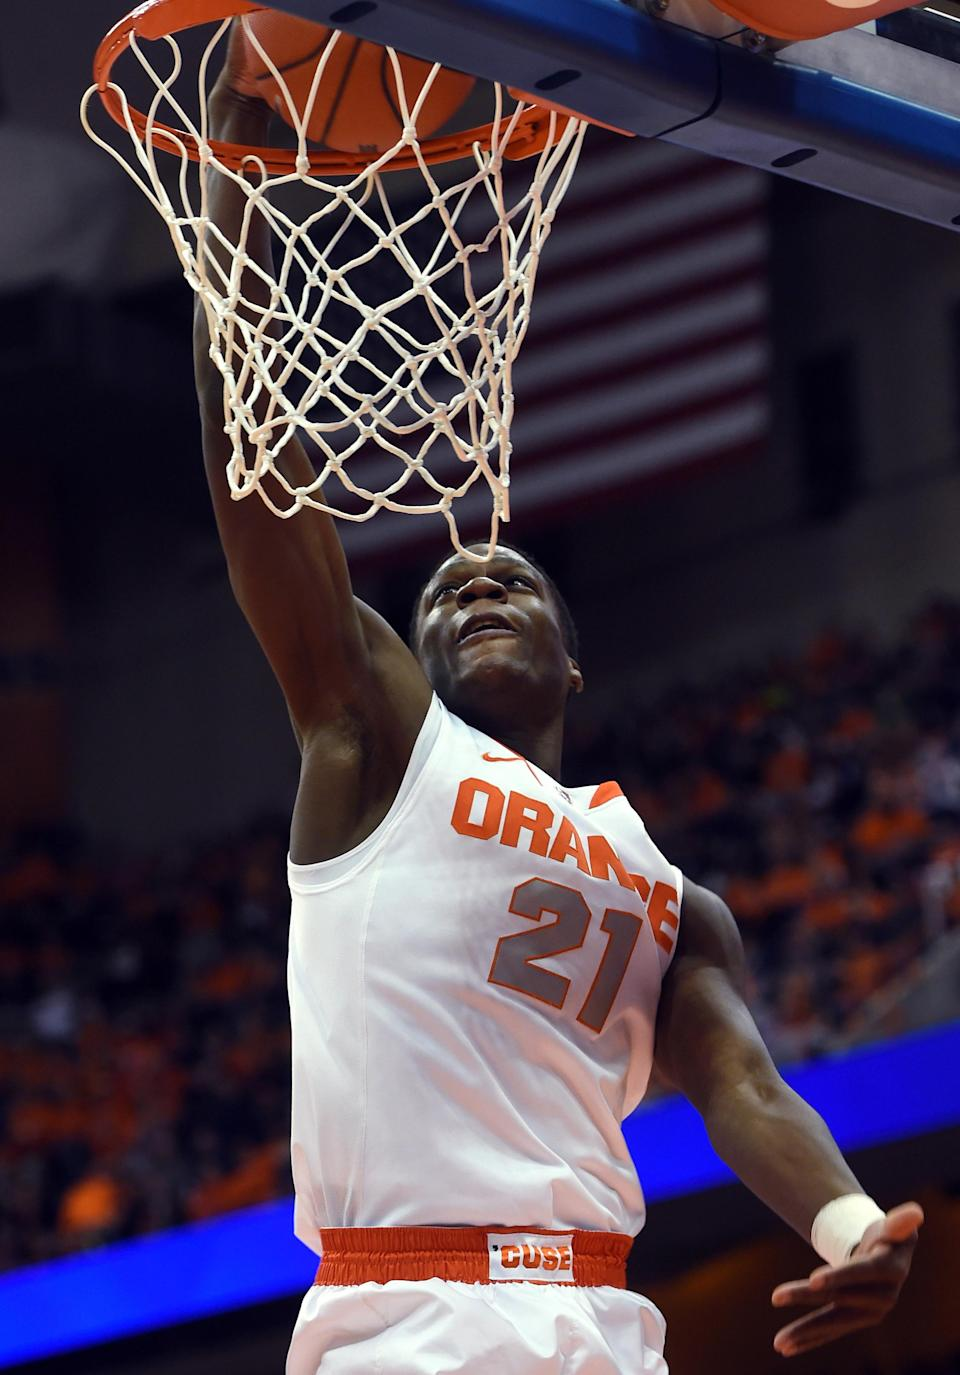 Syracuse's Tyler Roberson dunks against Colgate during the first half of an NCAA college basketball game in Syracuse, N.Y., Monday, Dec. 22, 2014. (AP Photo/Kevin Rivoli)